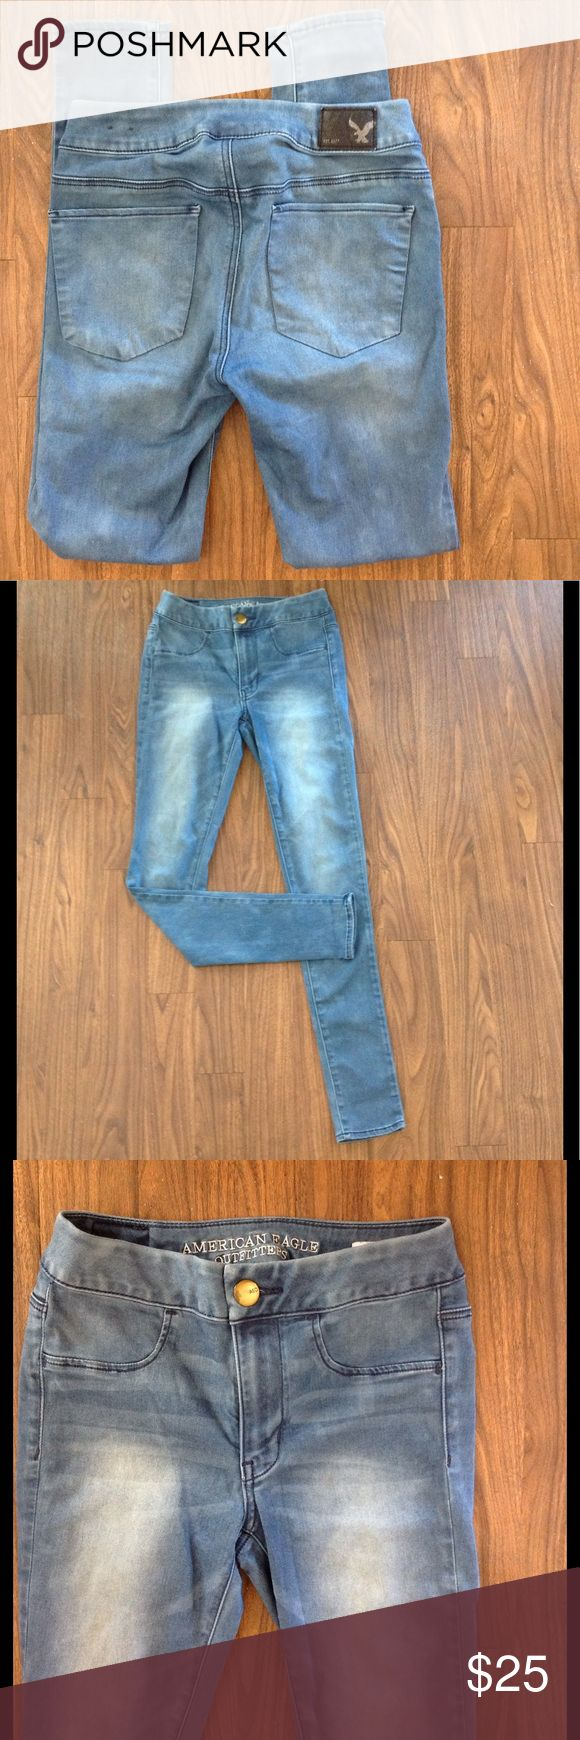 American eagle outfitters legging jeans supper sz2 American eagle outfitters extreme leggings. Size 2. Super super stretch. Zipper front. Two back pockets.Good preowned condition. Please look at all pictures before you purchase. Thanks! Jeans Skinny